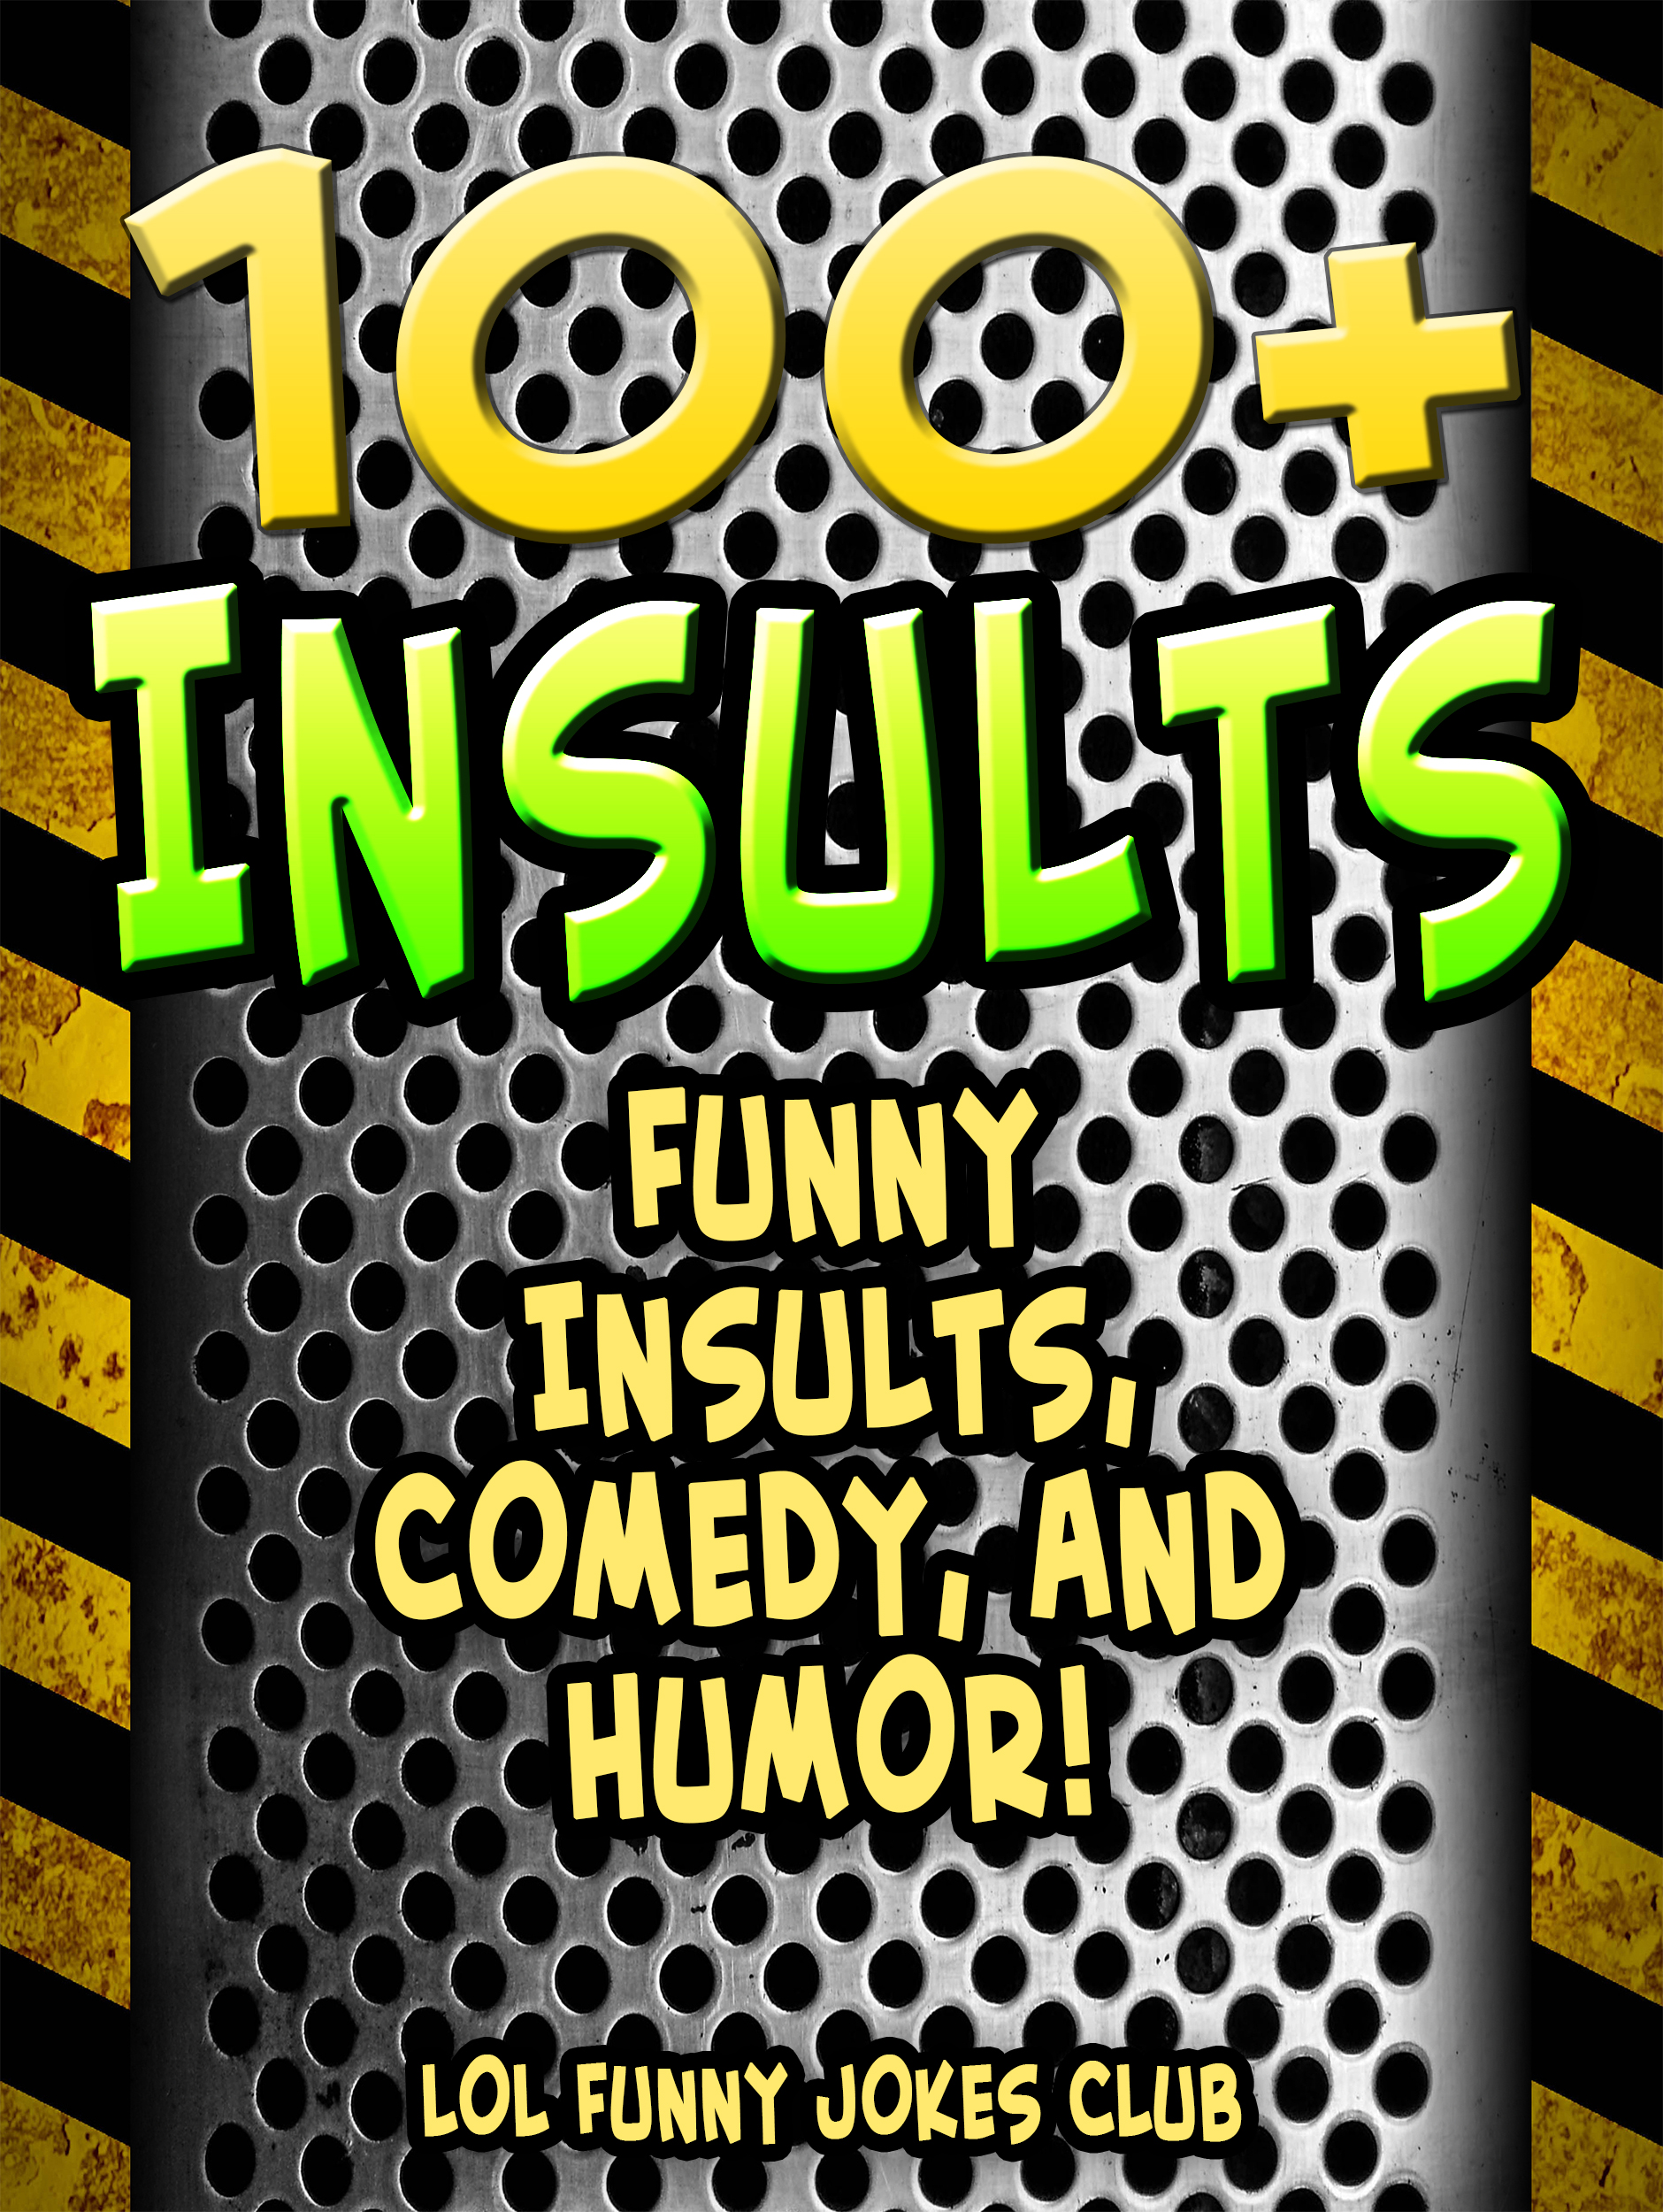 funny jokes to insult someone